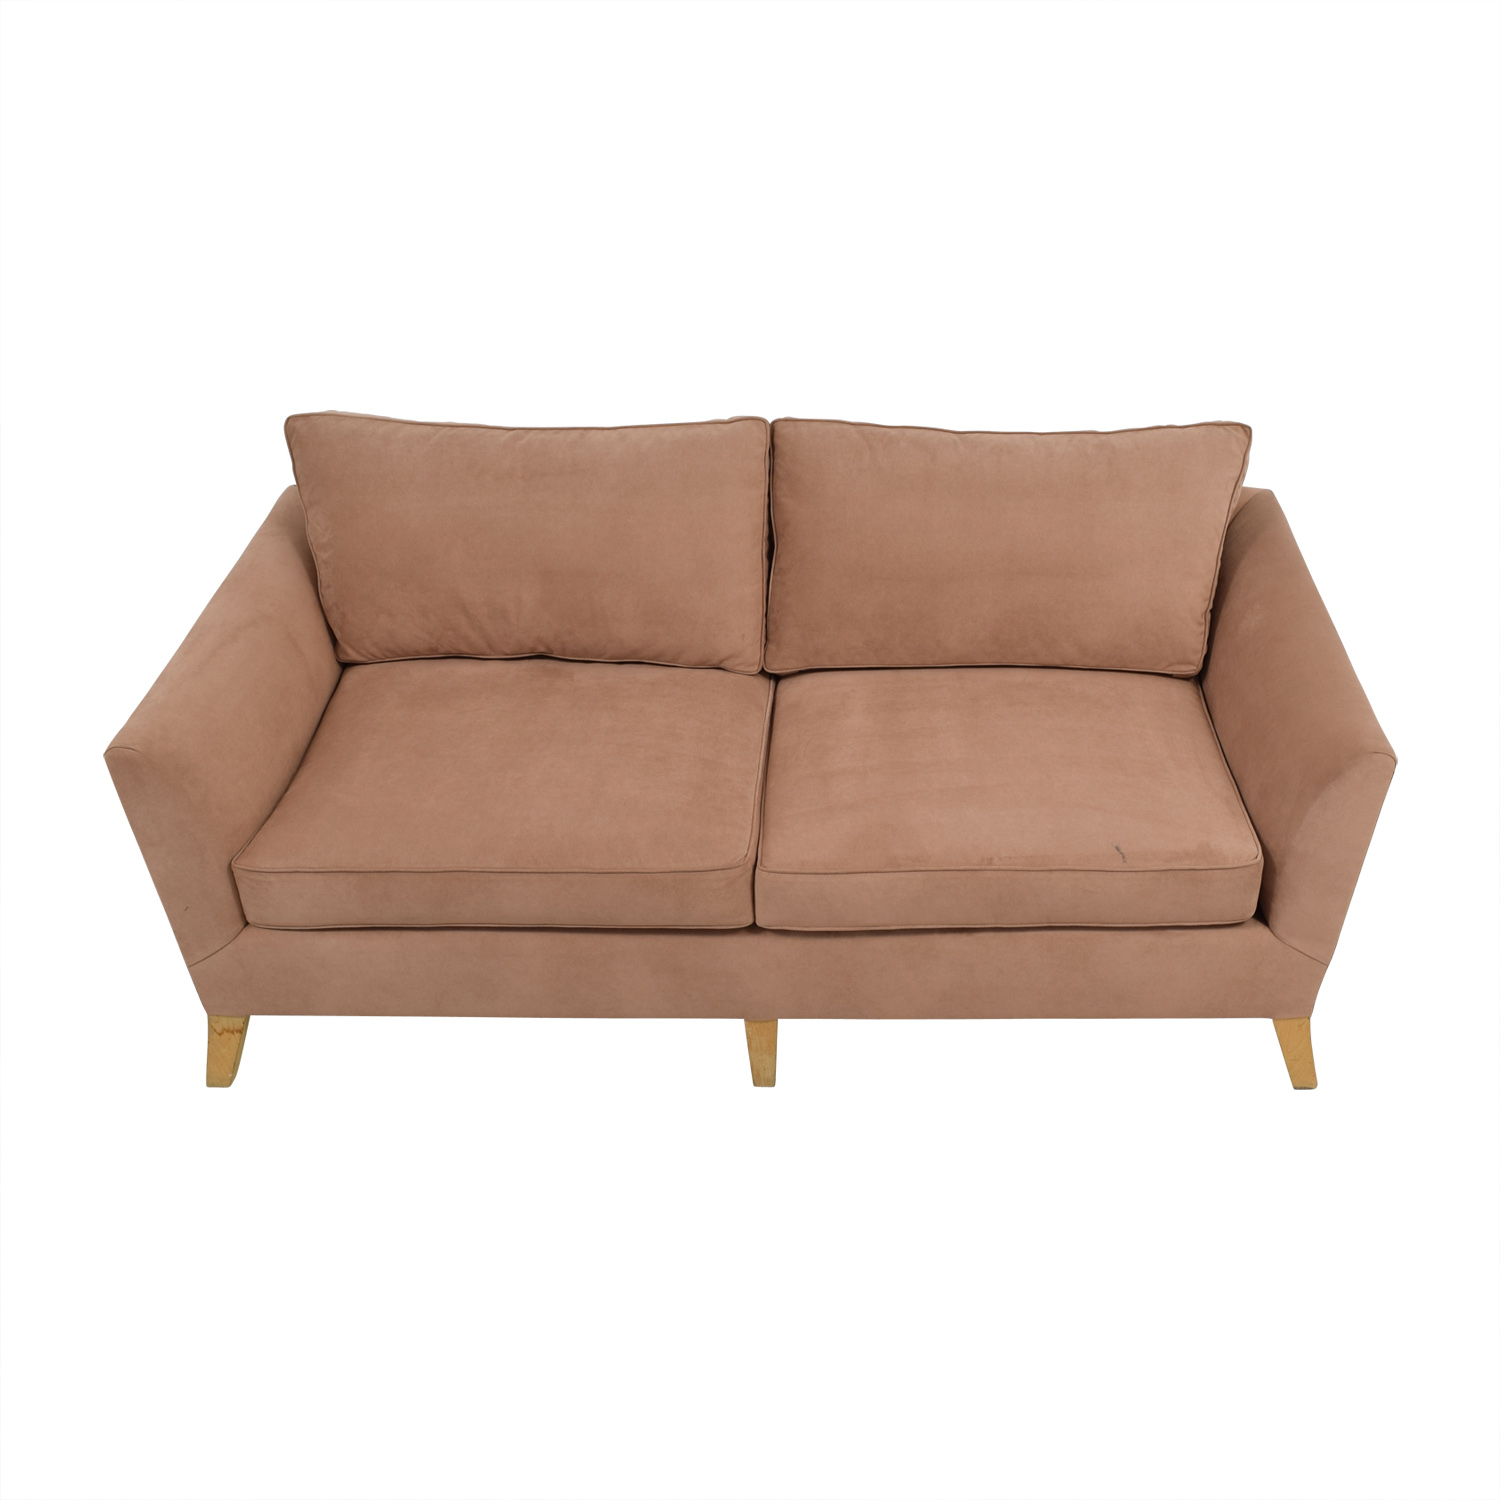 Furniture Masters Furniture Masters Custom Tan Two Seater Sofa tan